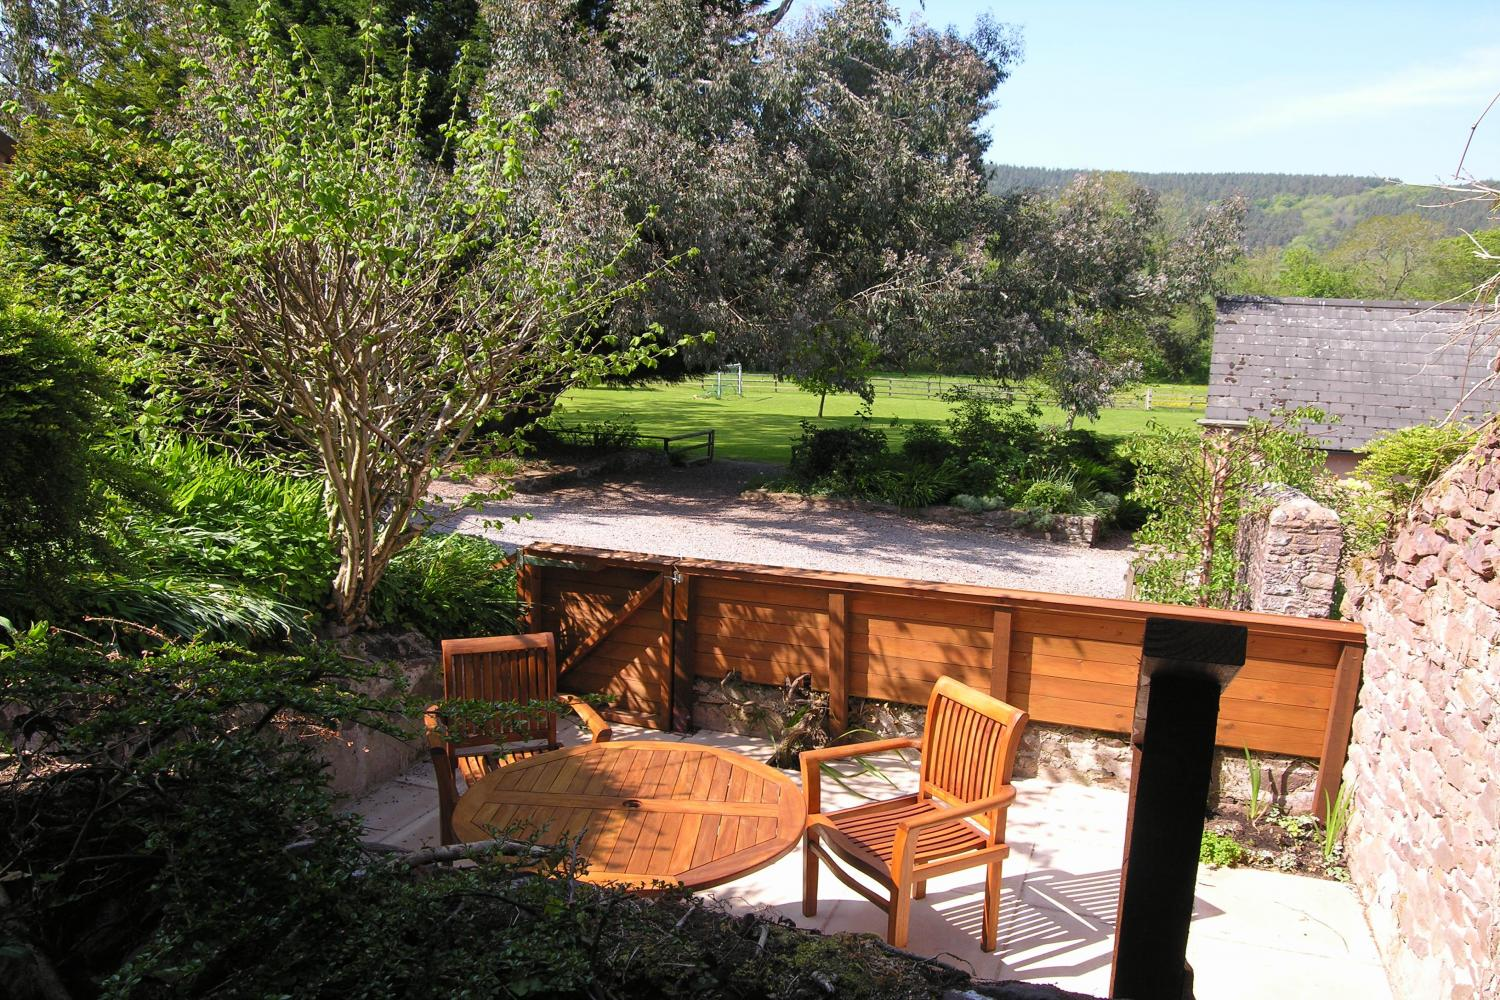 Cleeve Patio & view across_The_Avill_Valley